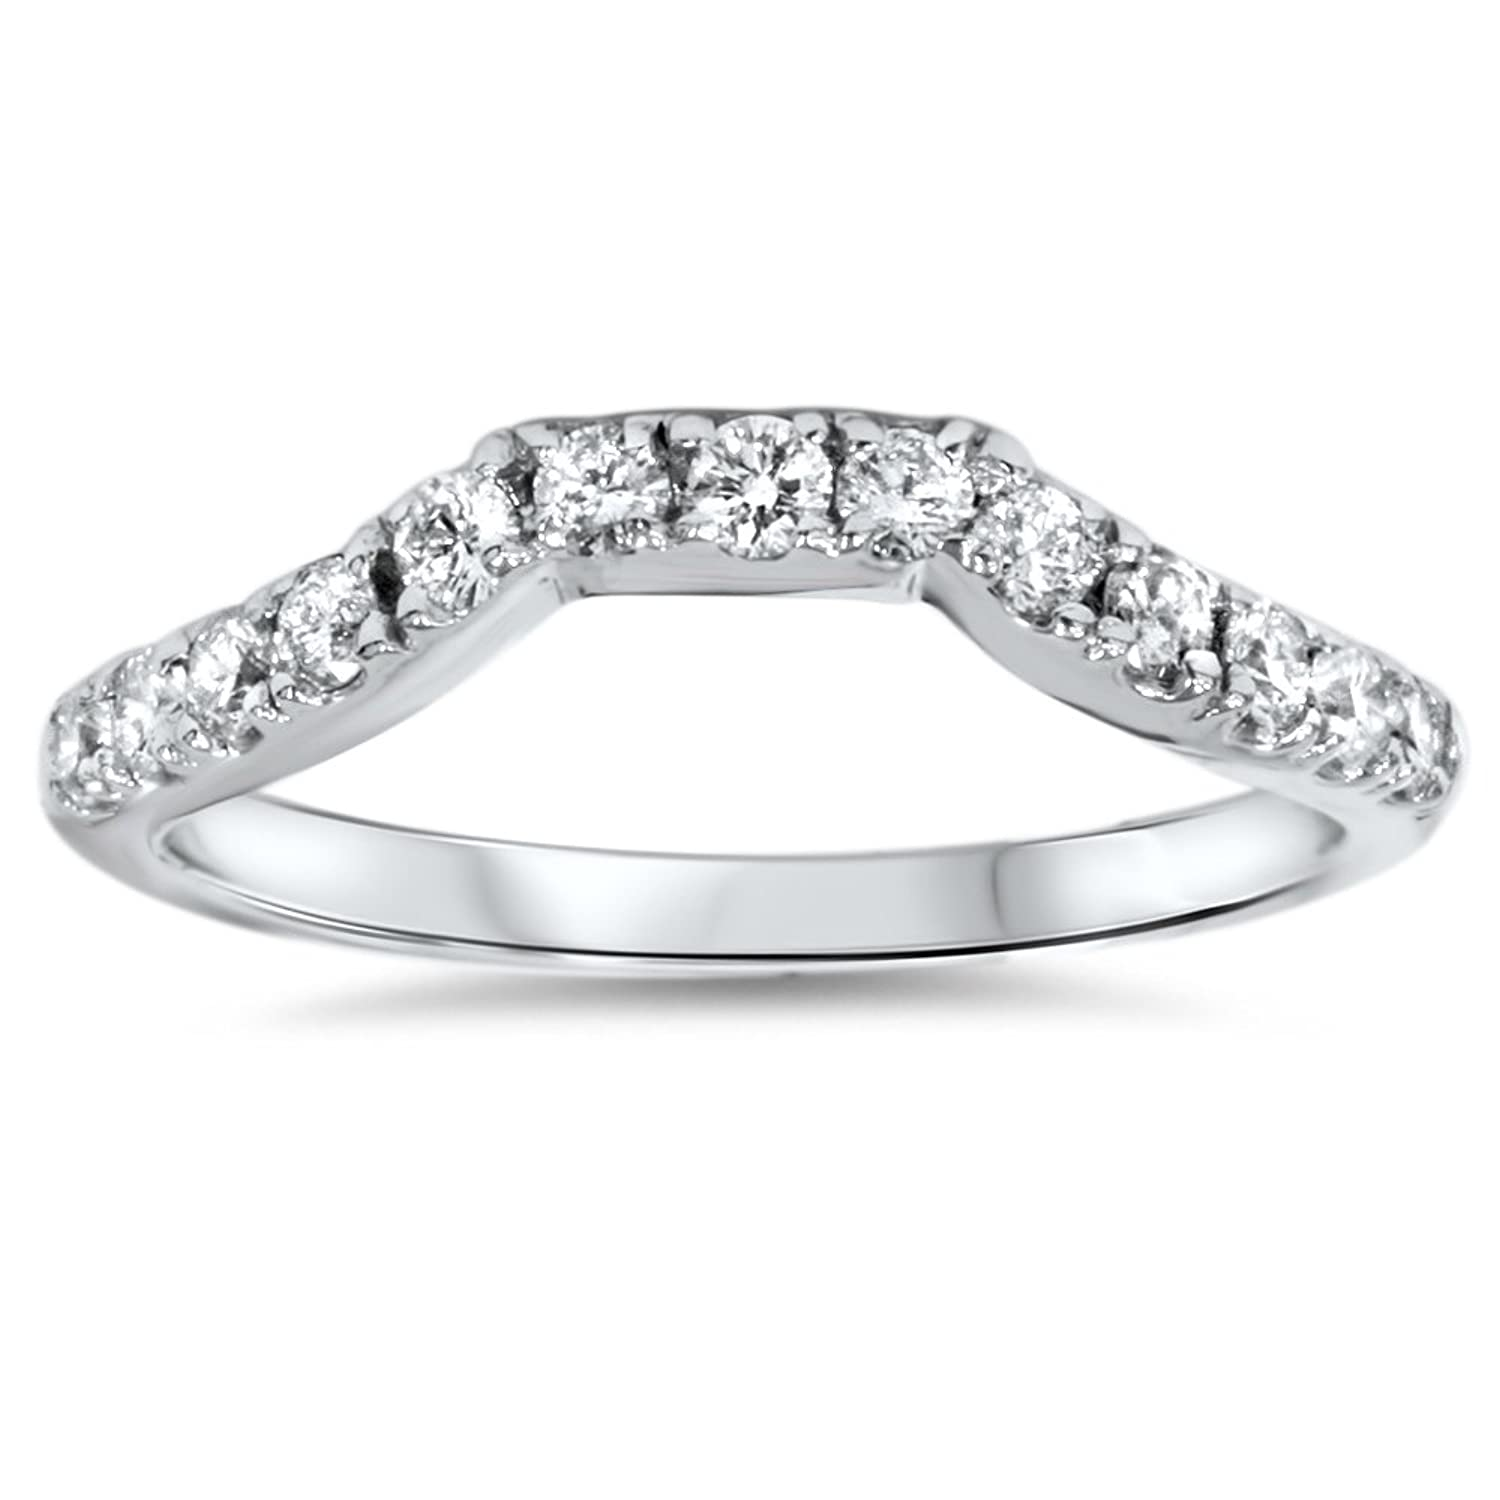 jewelry round ben in jeweler diamond band bridge baguette carat anniversary platinum ring bands